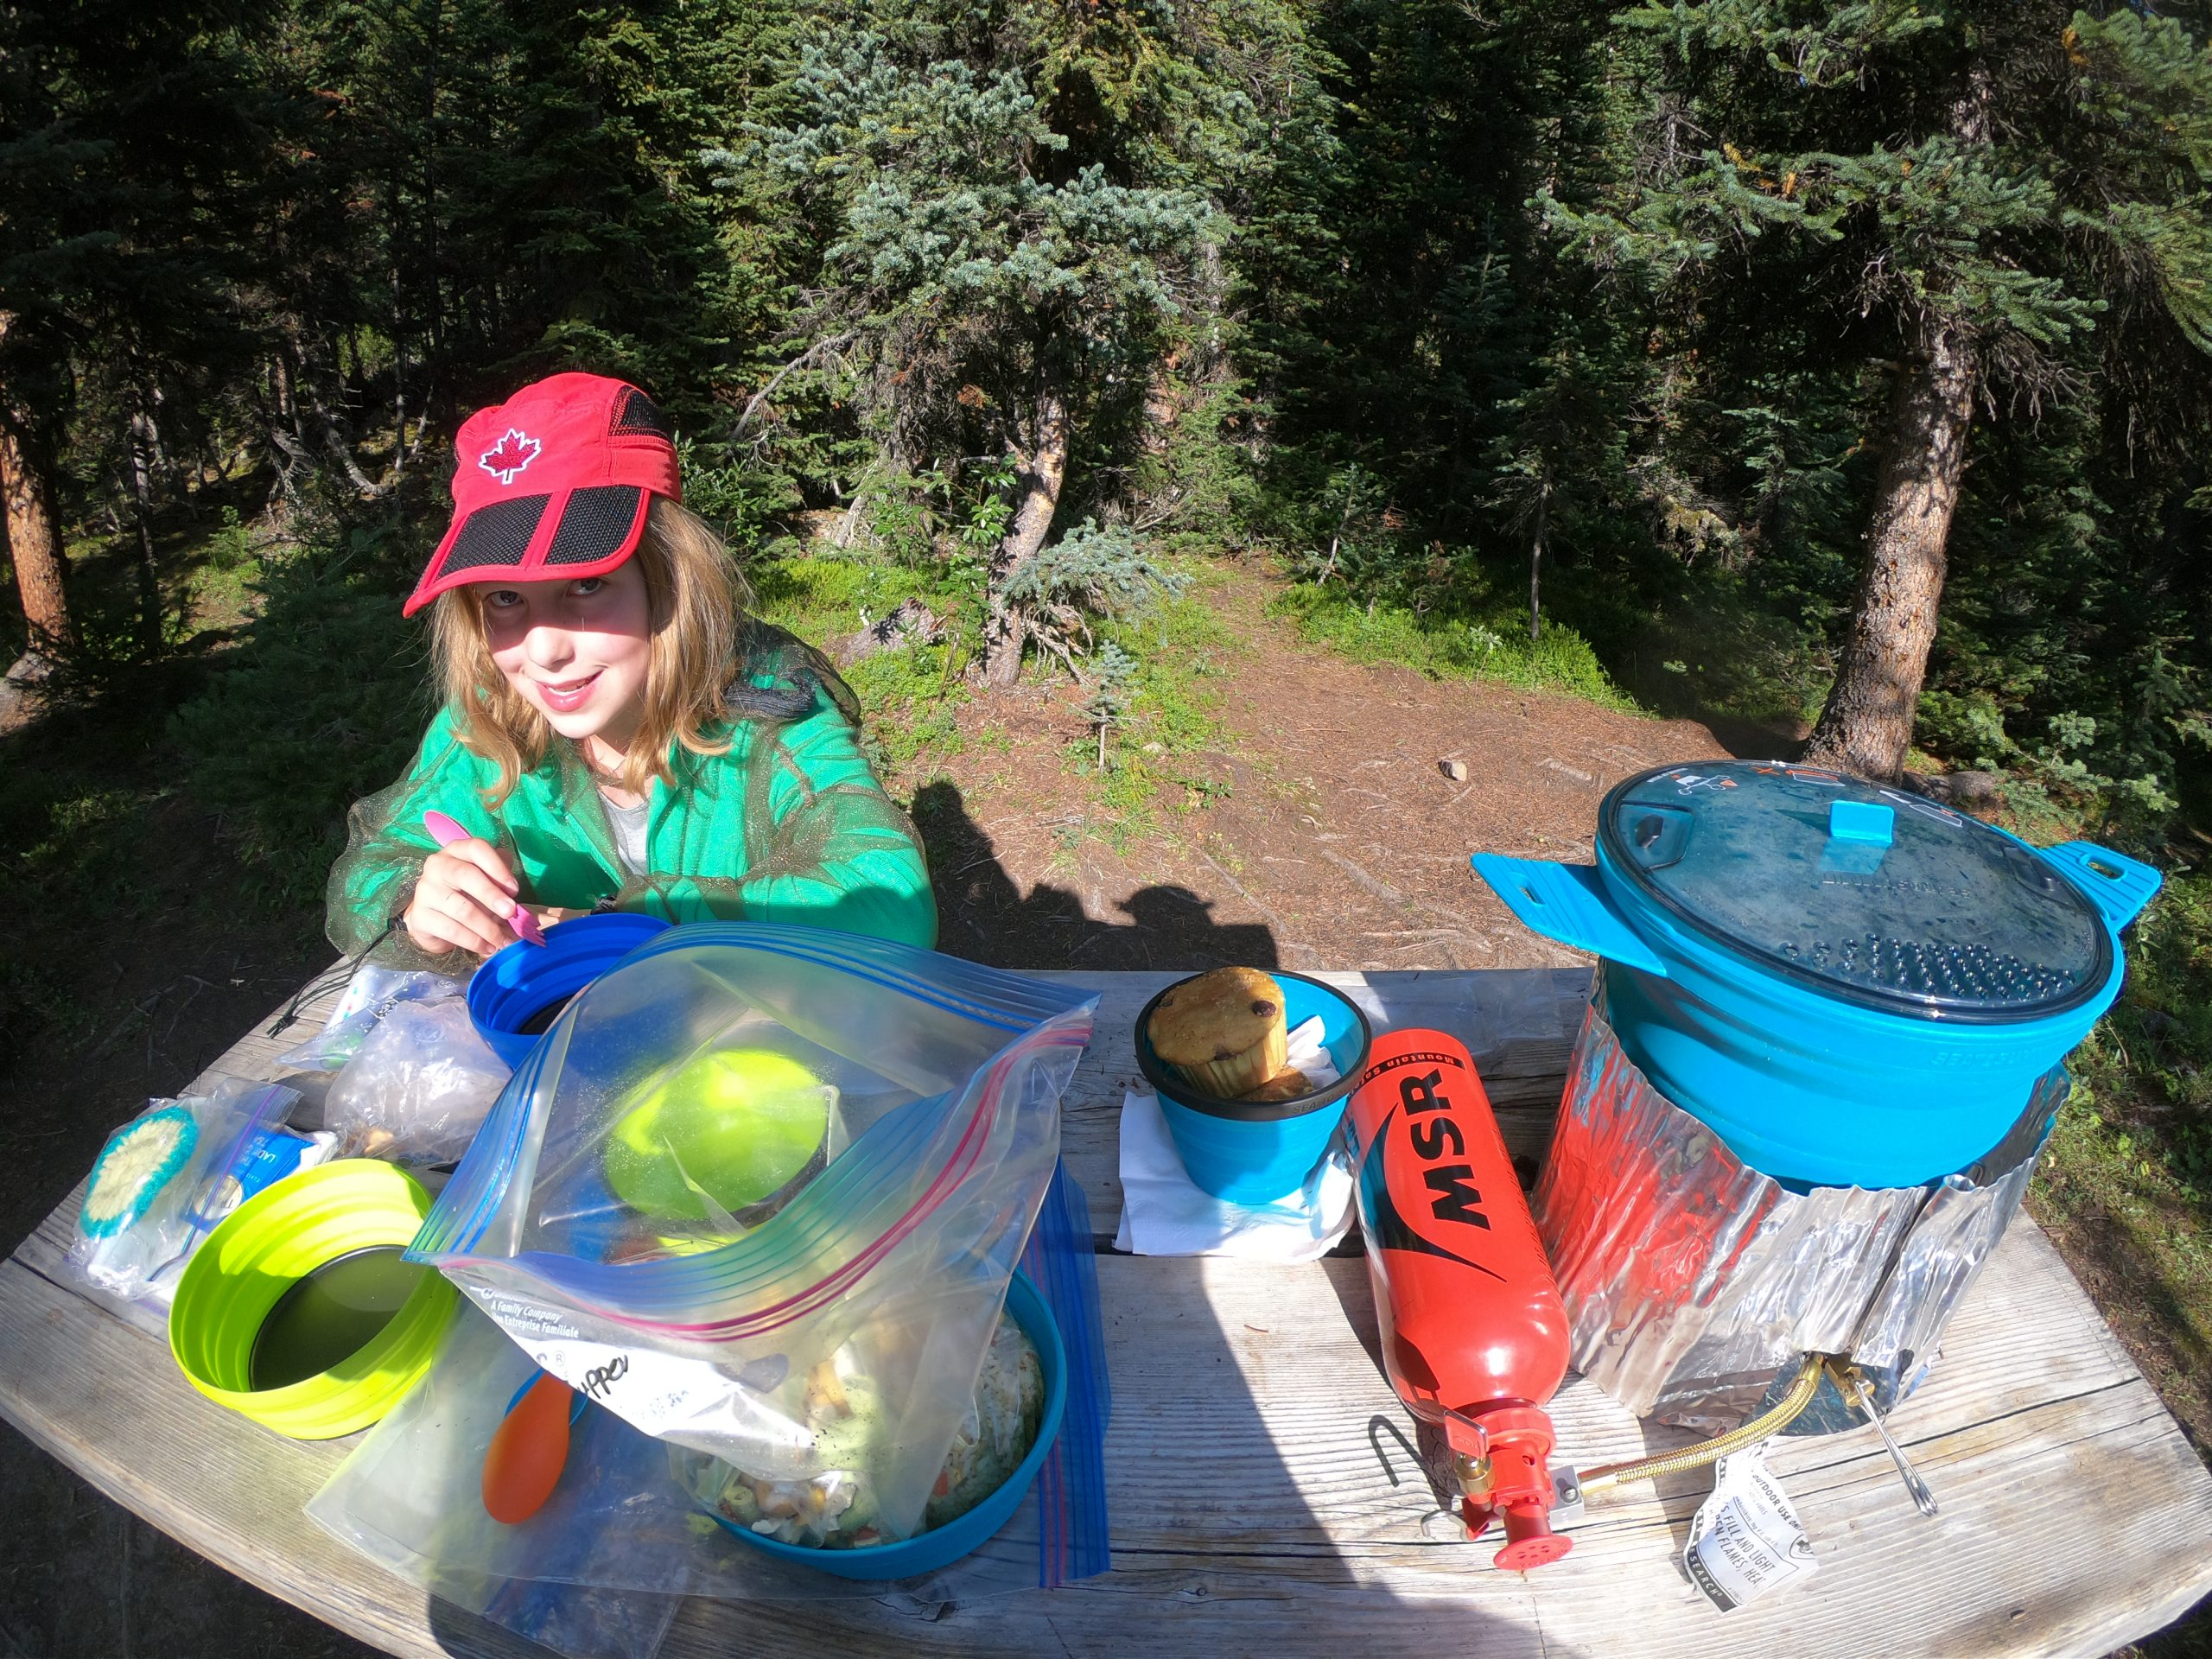 An elaborate backpacking camp stove and fuel bottle is set up on small table.